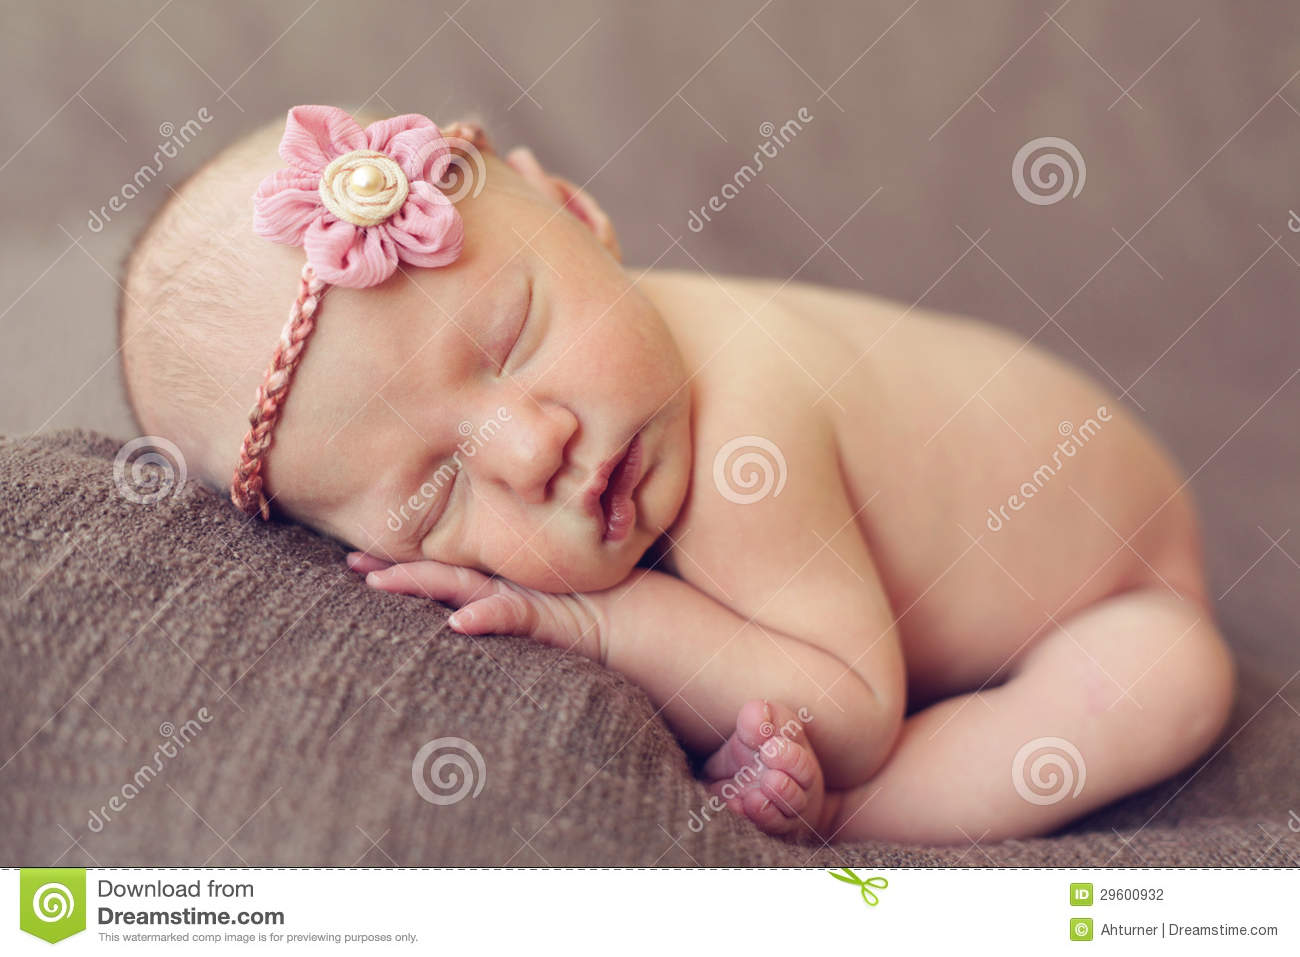 28 055 Sleeping Baby Girl Photos Free Royalty Free Stock Photos From Dreamstime